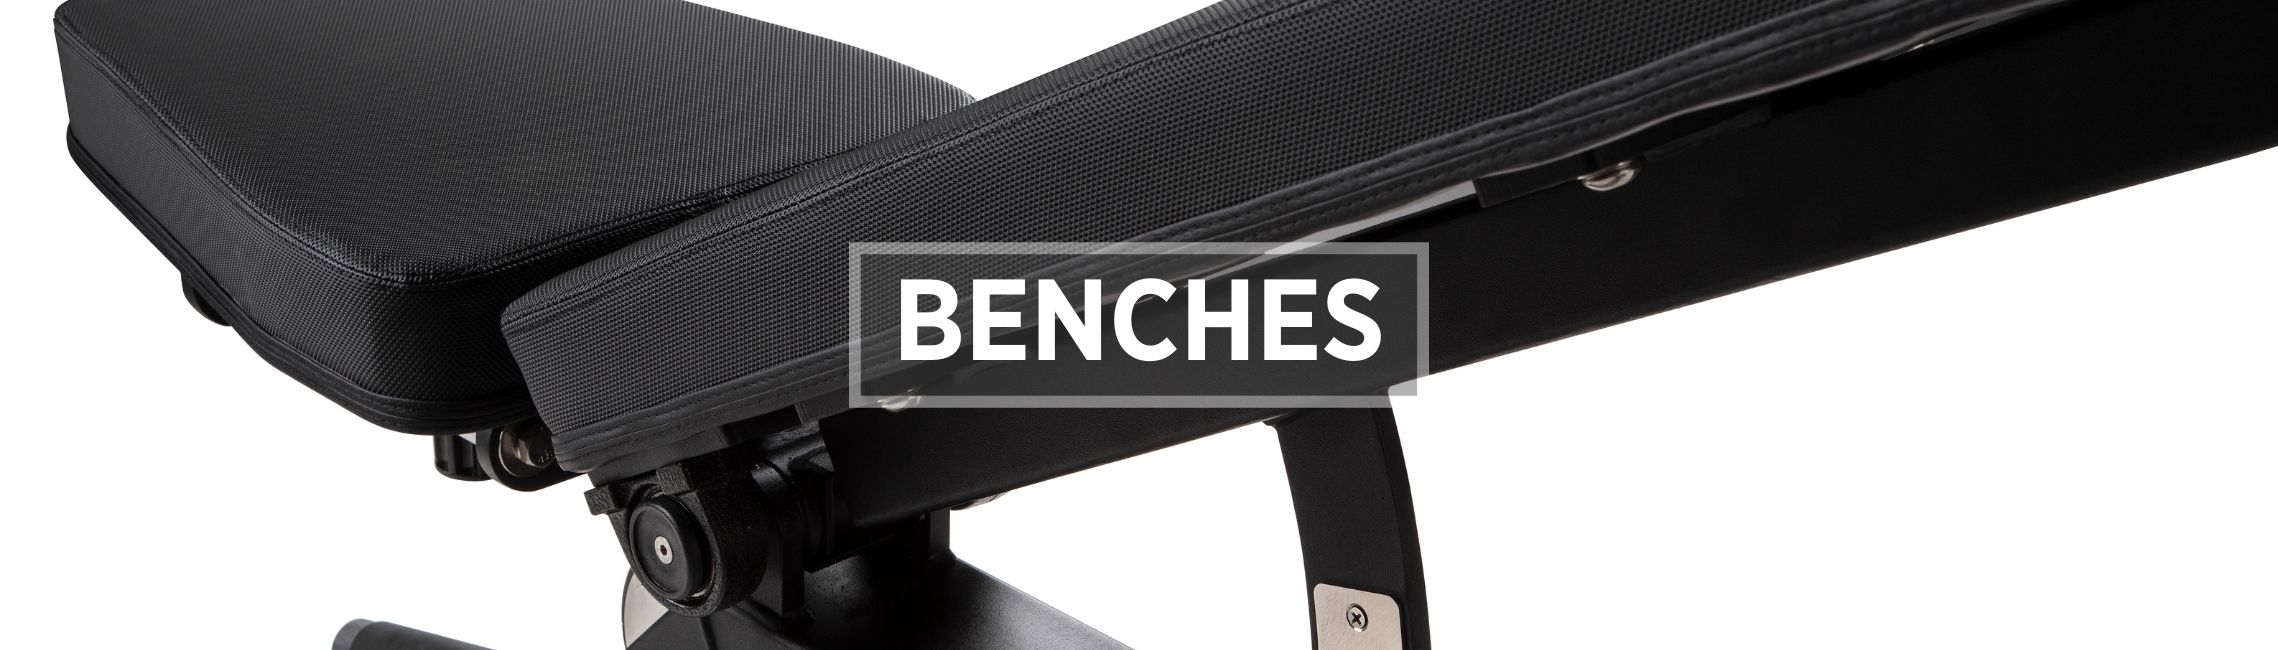 Weight Benches - Flat & Adjustable